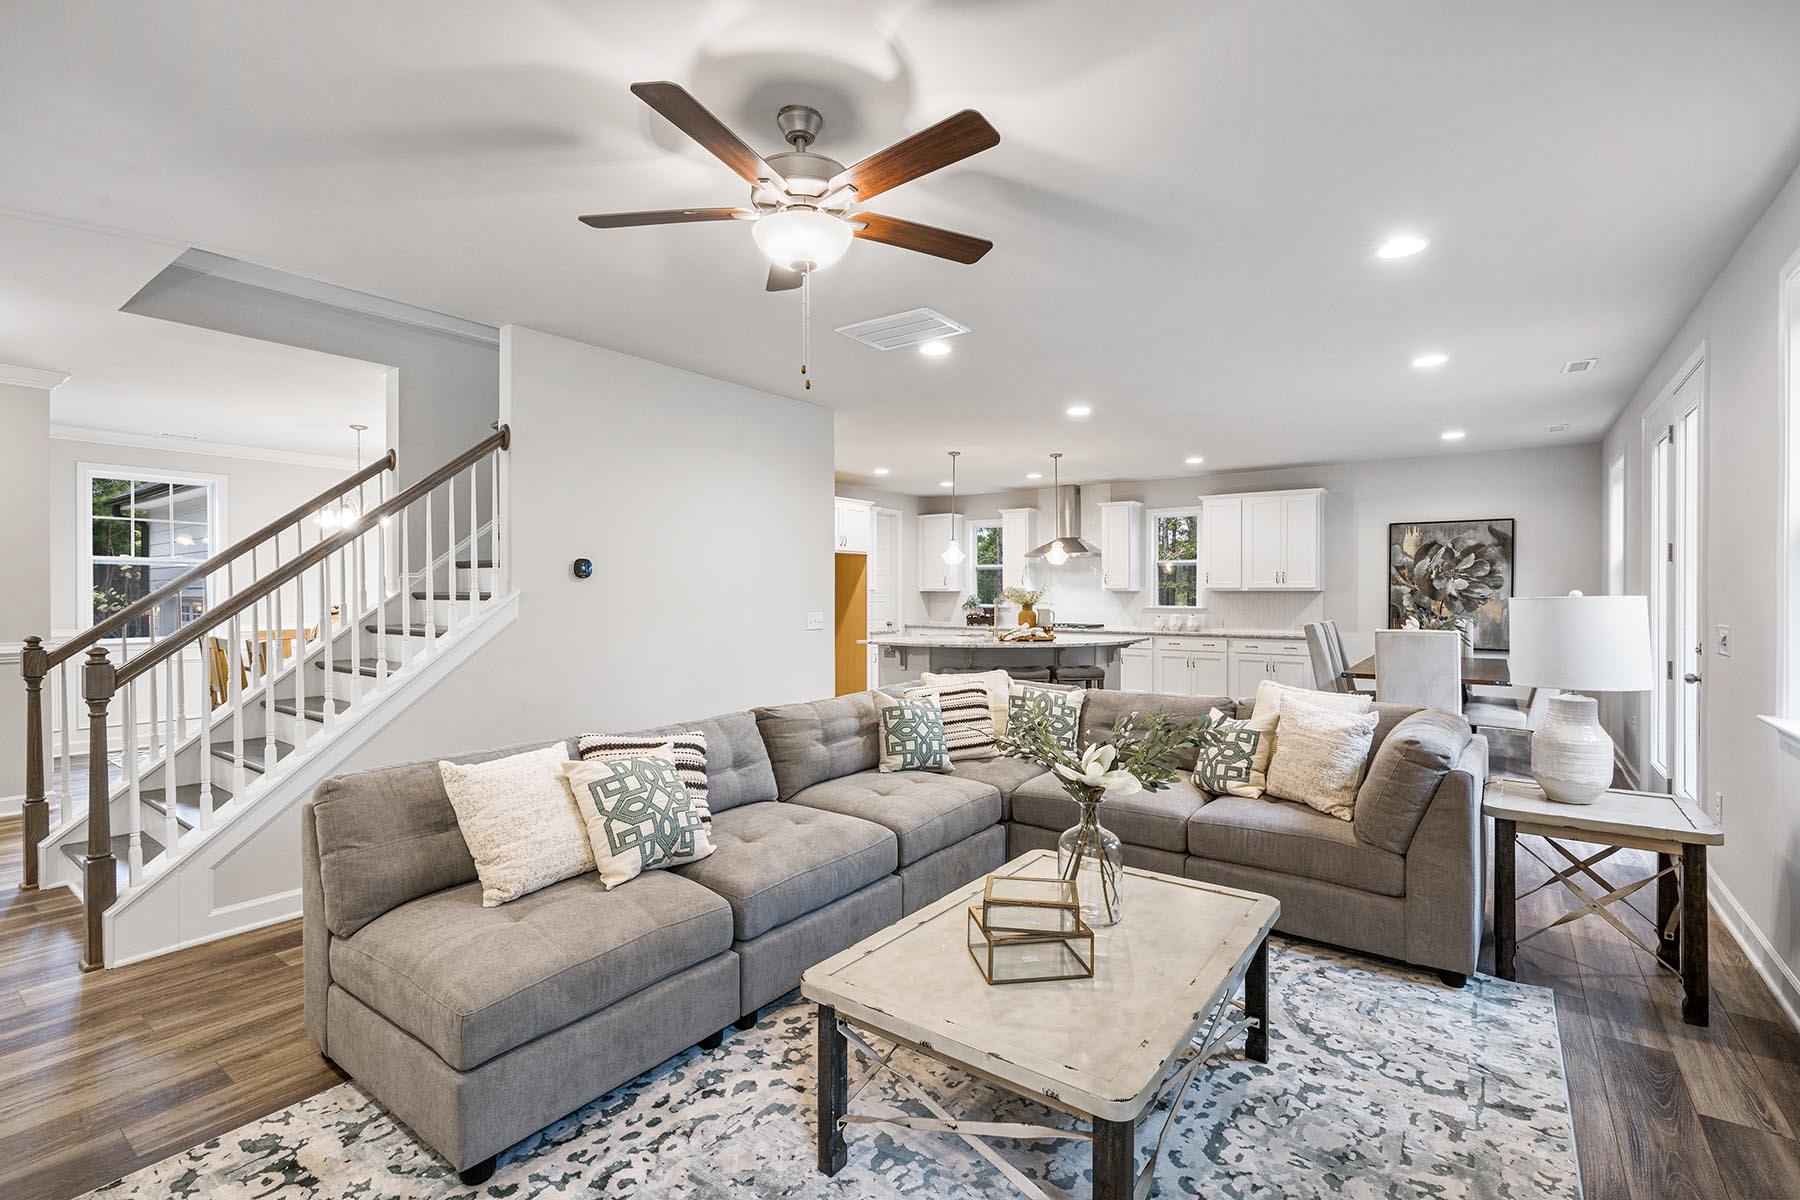 Kendrick Plan Greatroom at Fairview Park in Cary North Carolina by Mattamy Homes